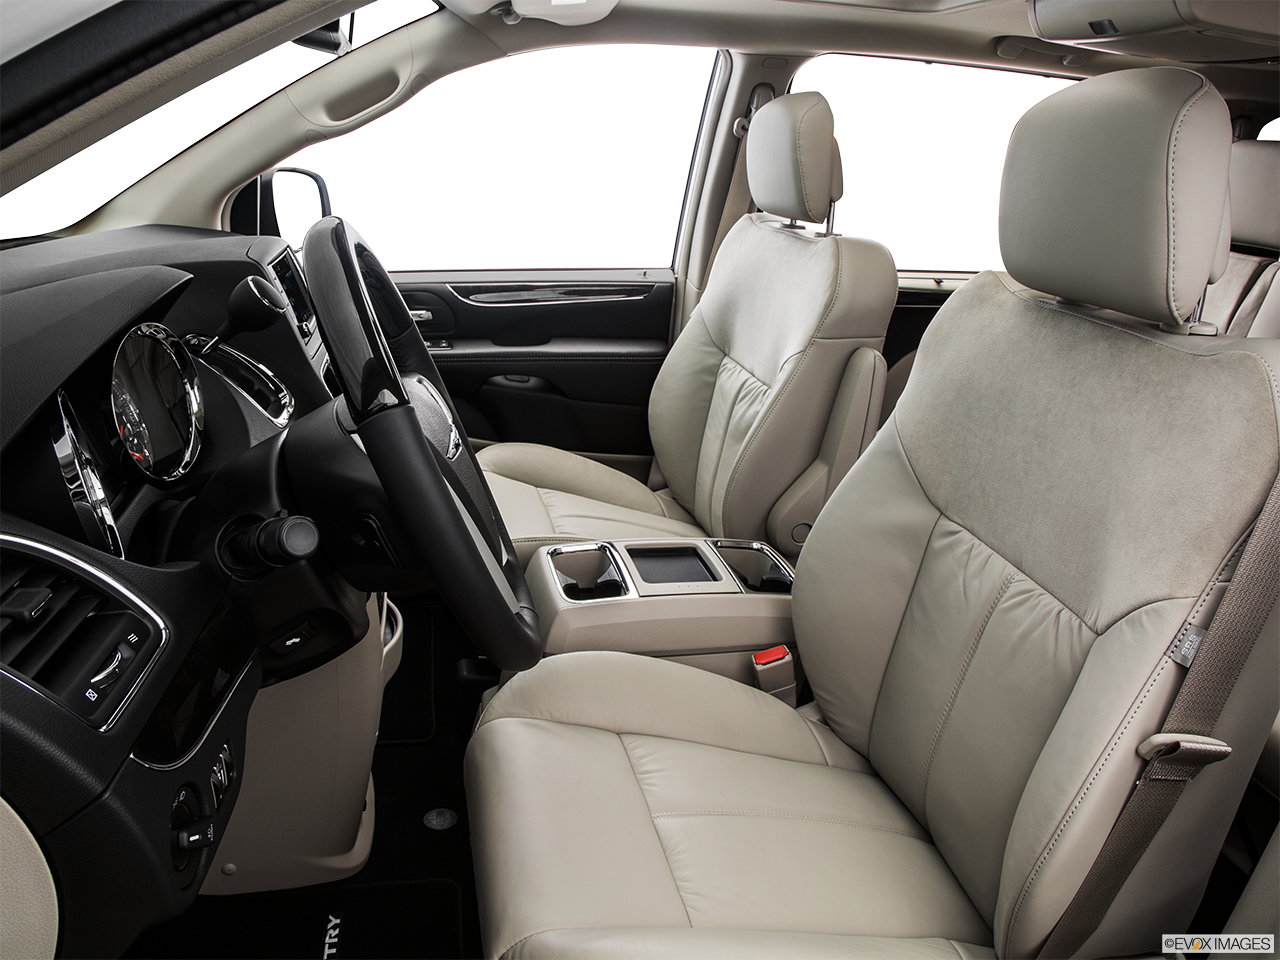 Research The 2015 Chrysler Town and Country in Huntington Beach